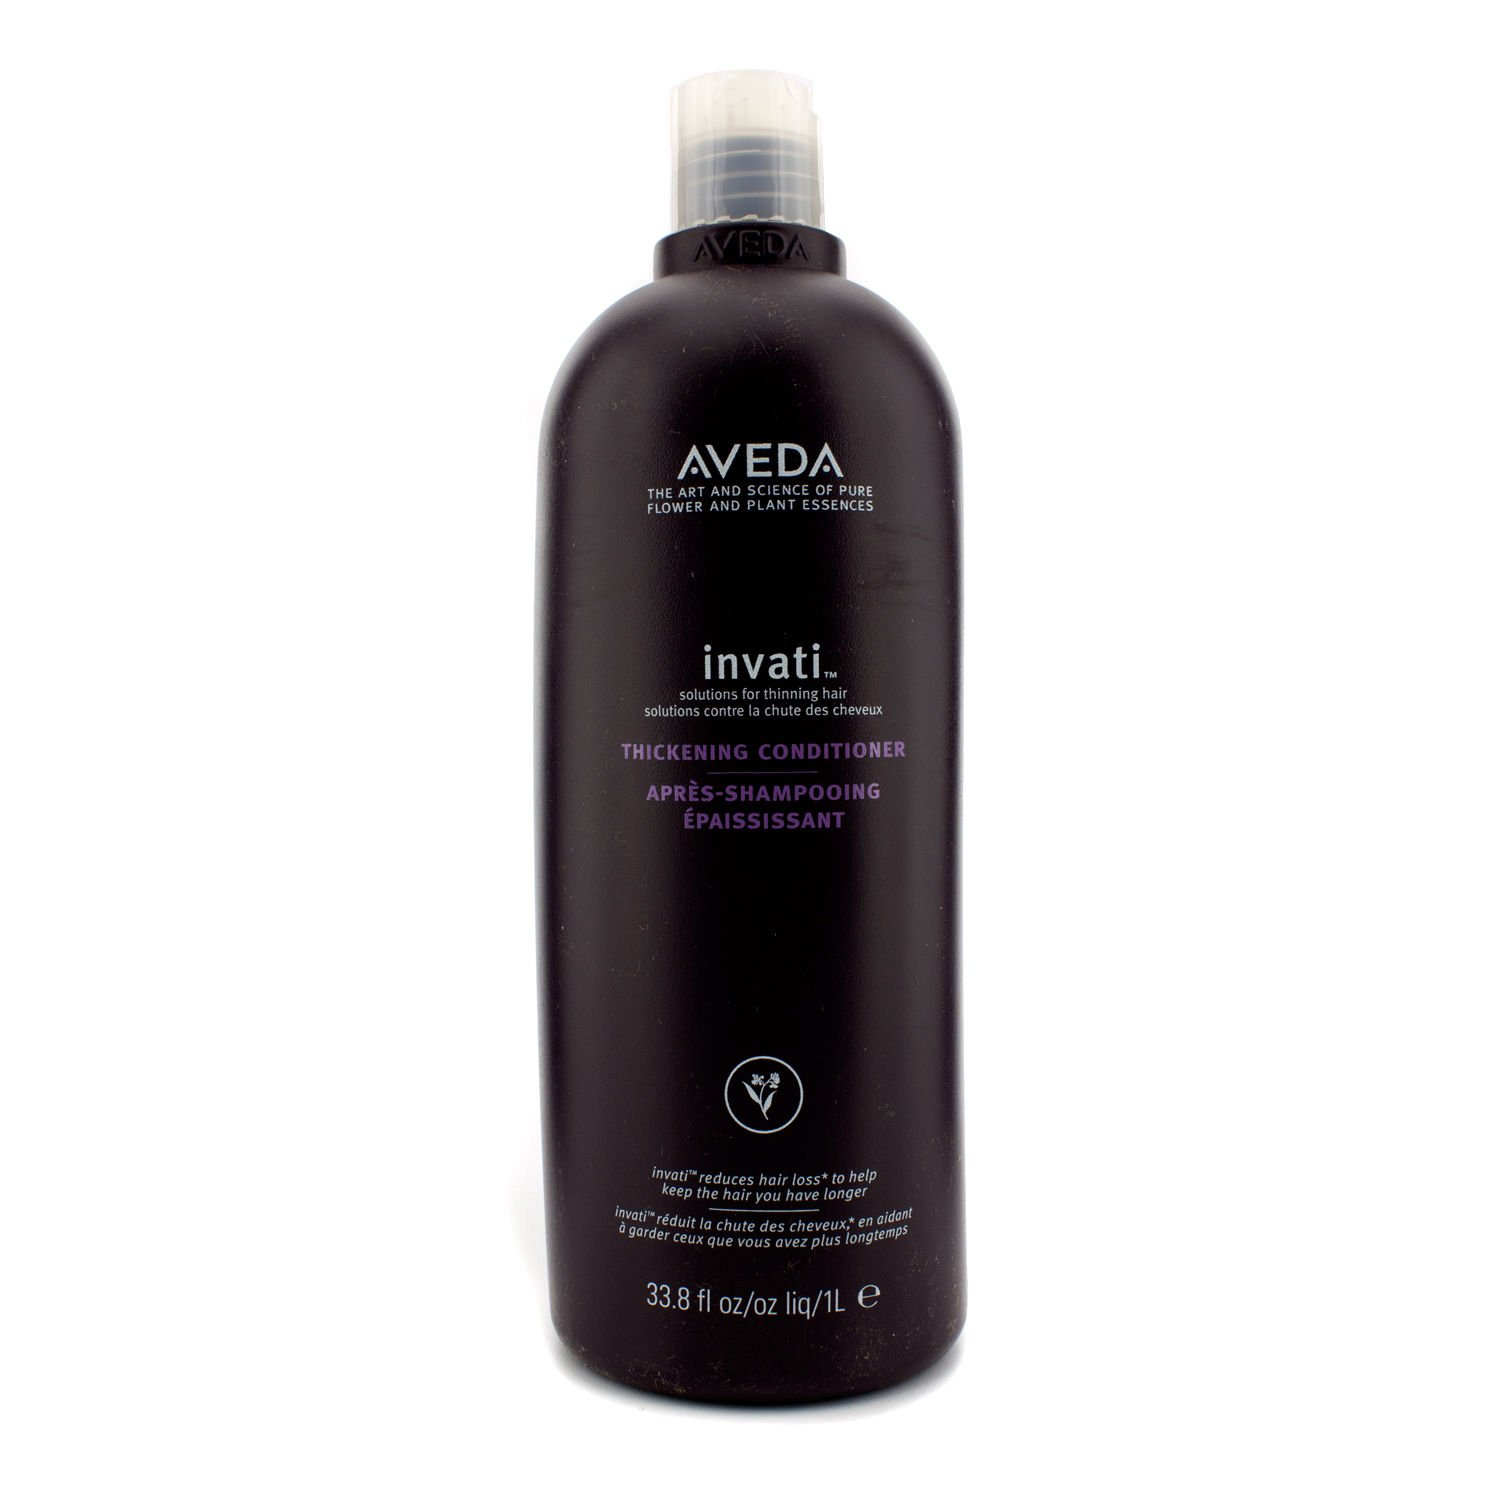 Aveda - Invati Thickening Conditioner - For Thinning Hair - 1000ml/33.8oz All Hair Types by Laco/1925 (Image #1)